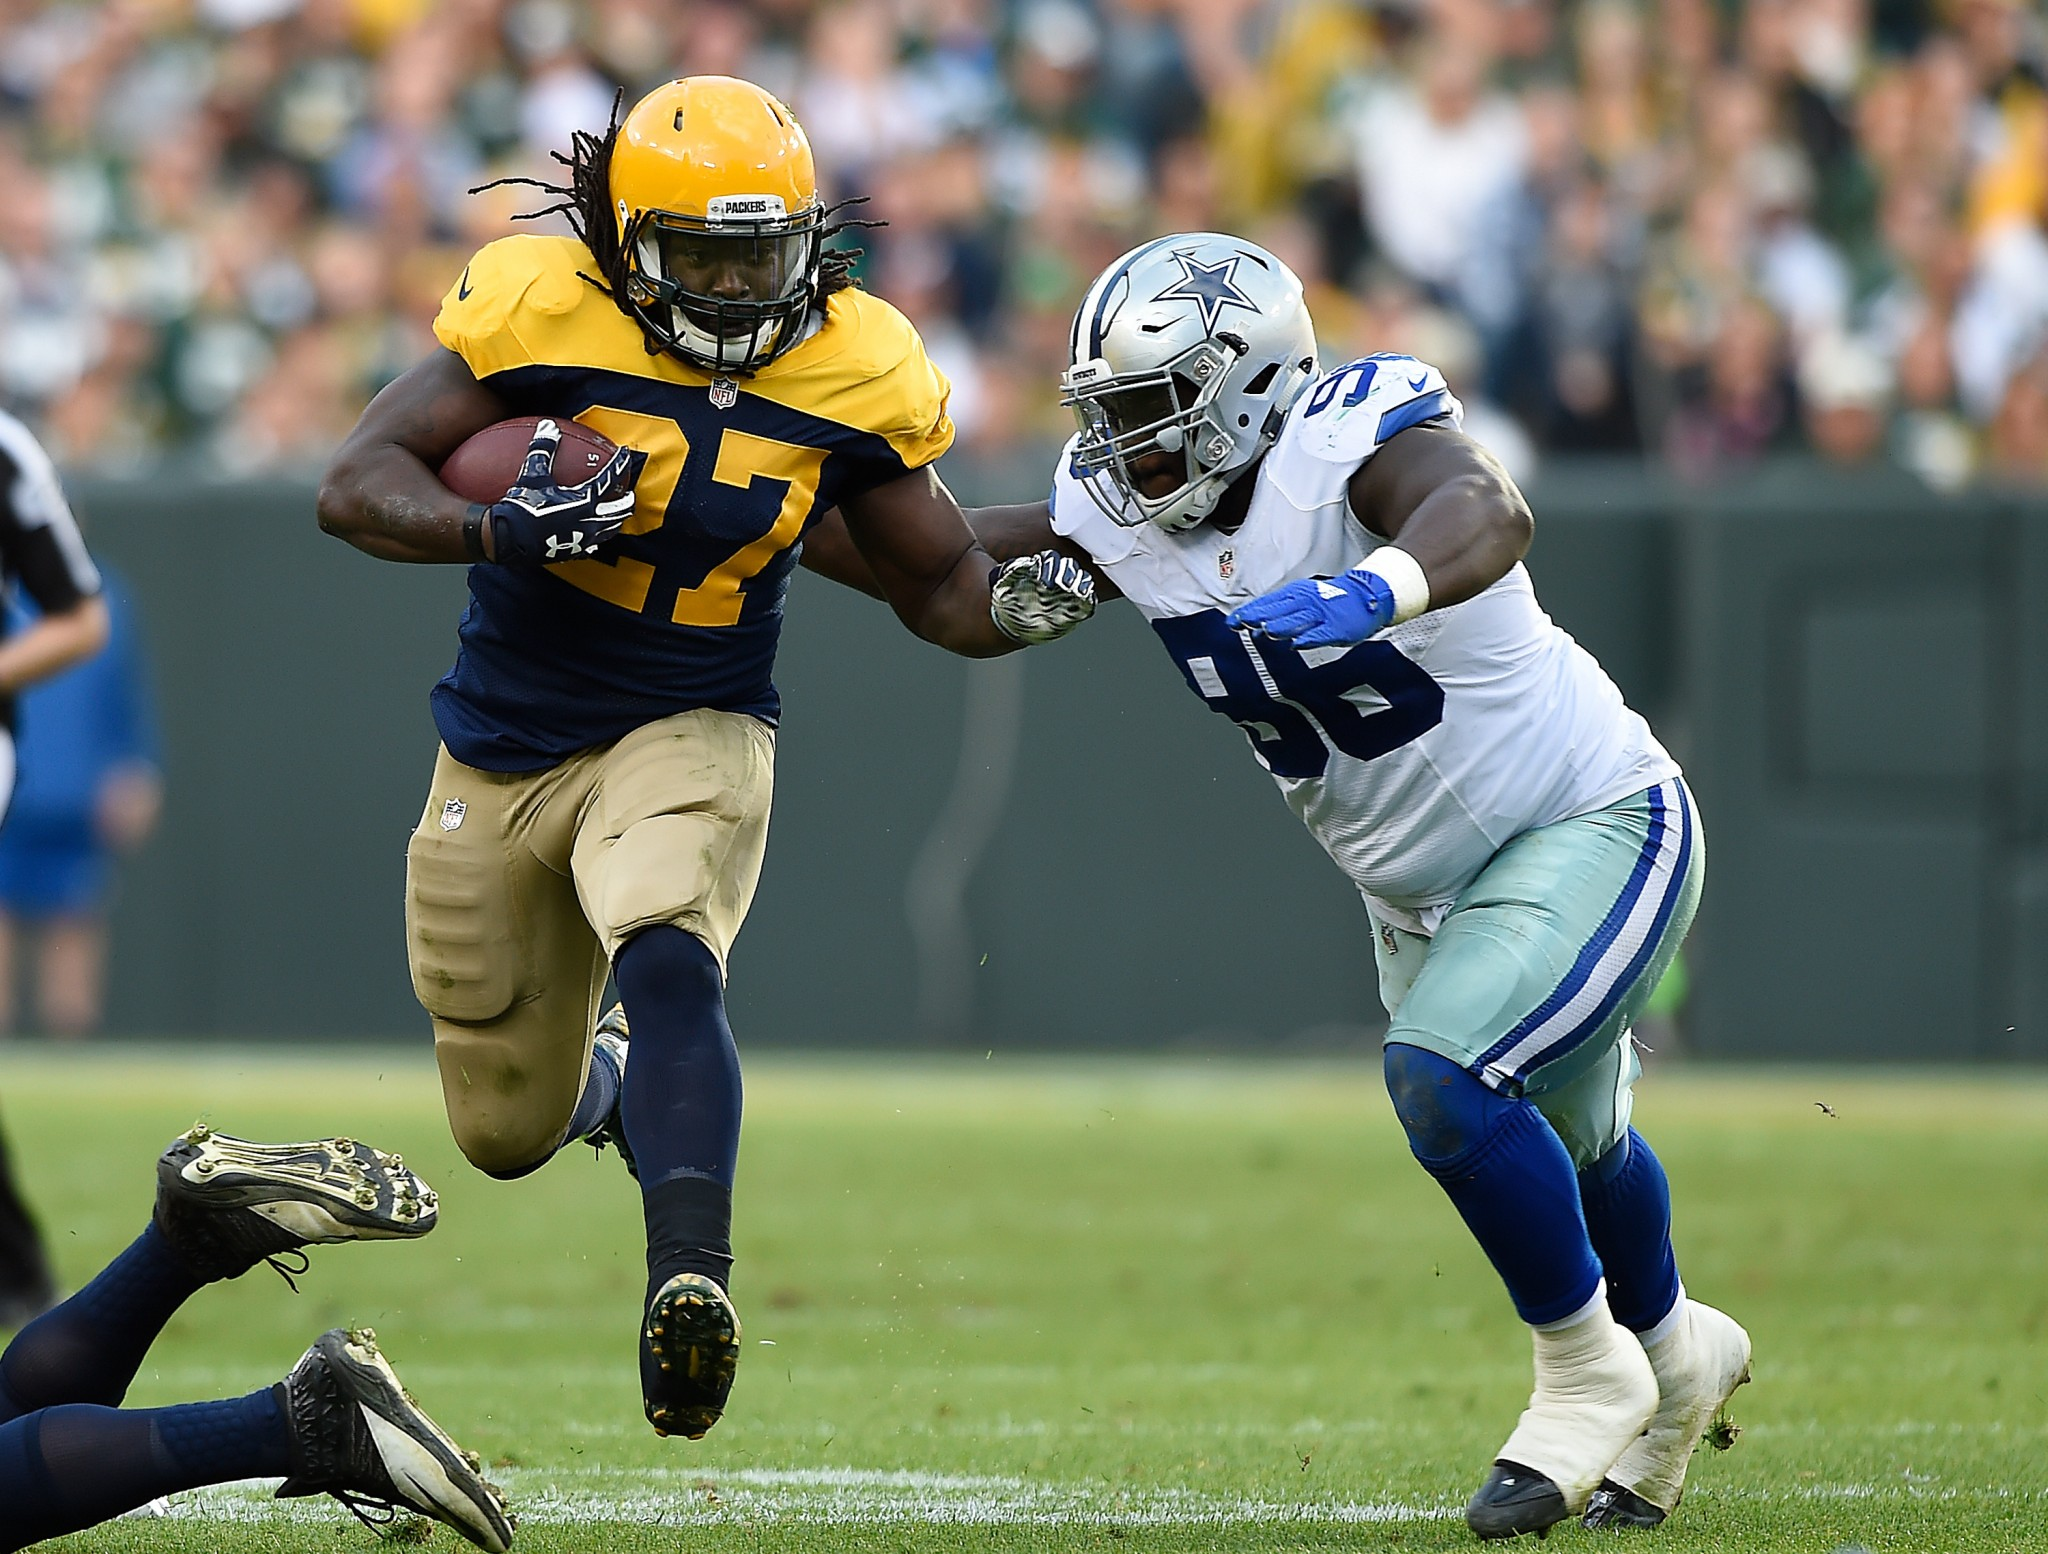 Eddie Lacy to IR puts even more pressure on Aaron Rodgers